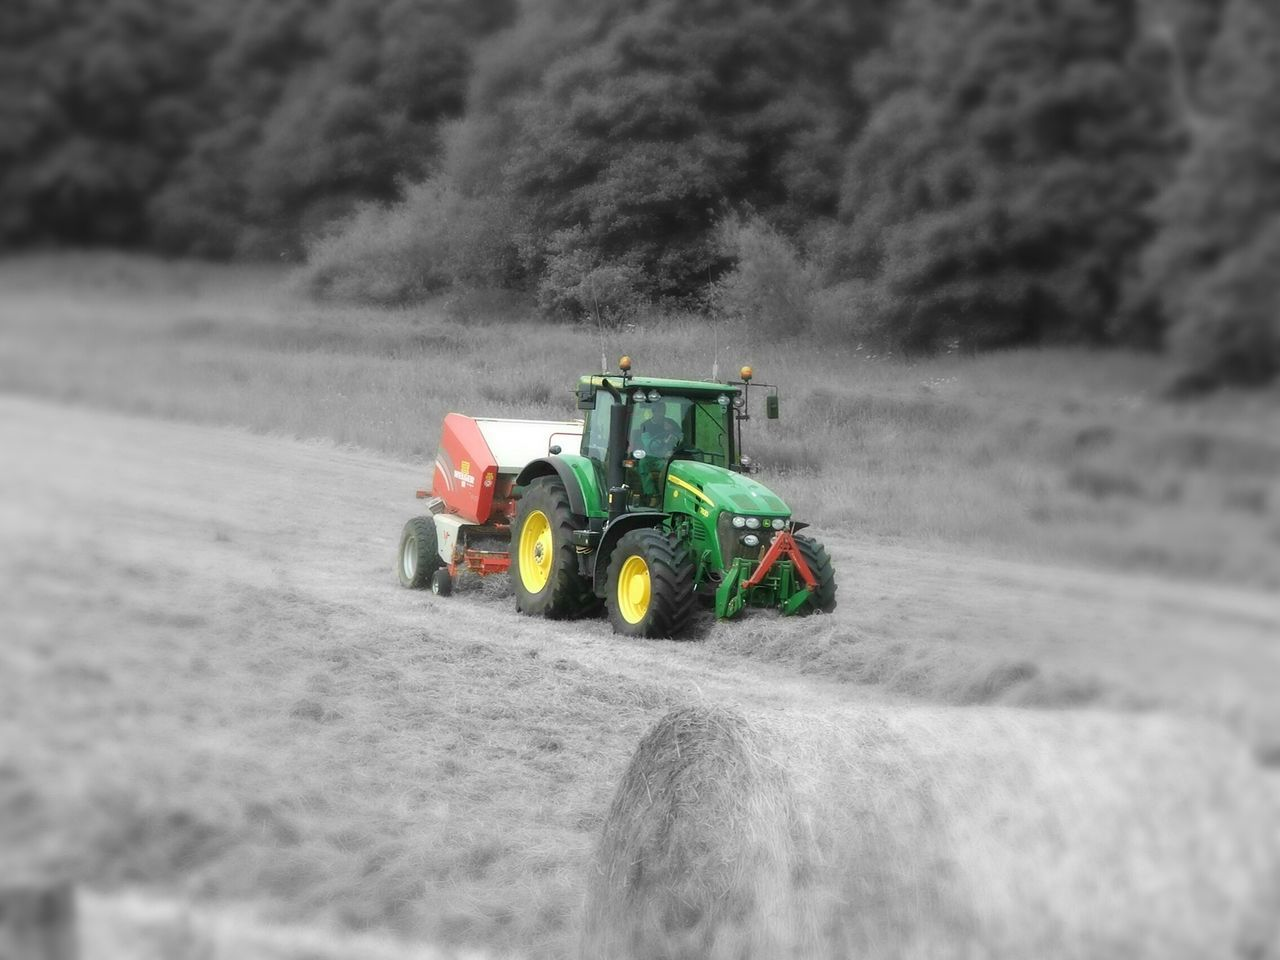 transportation, day, motion, outdoors, no people, water, nature, combine harvester